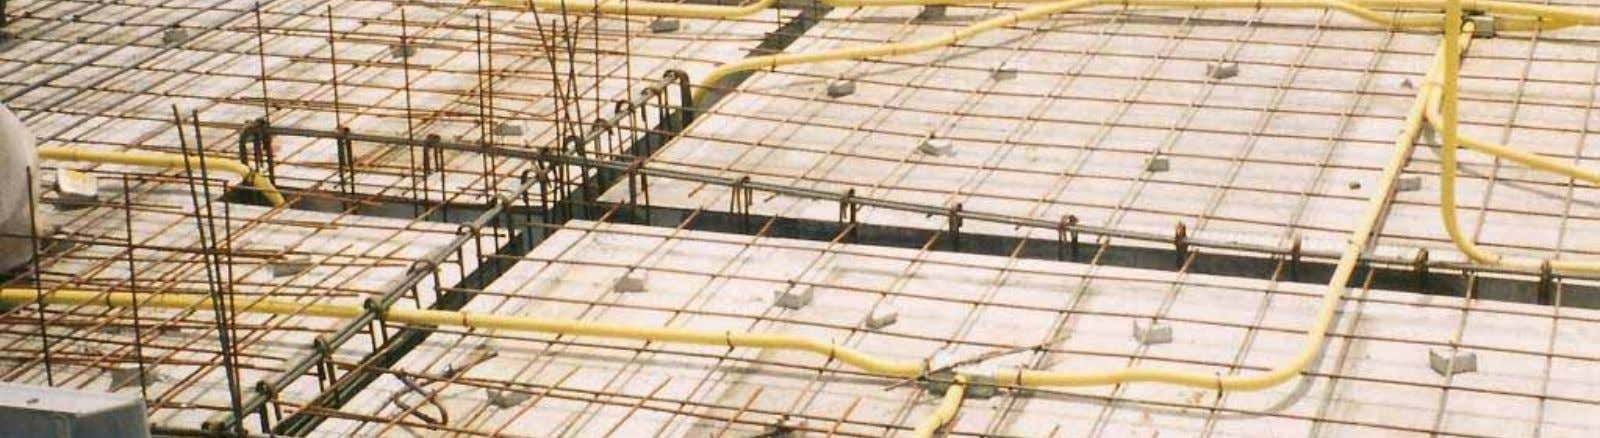 PVC Electrical Conduits for Floor Slabs